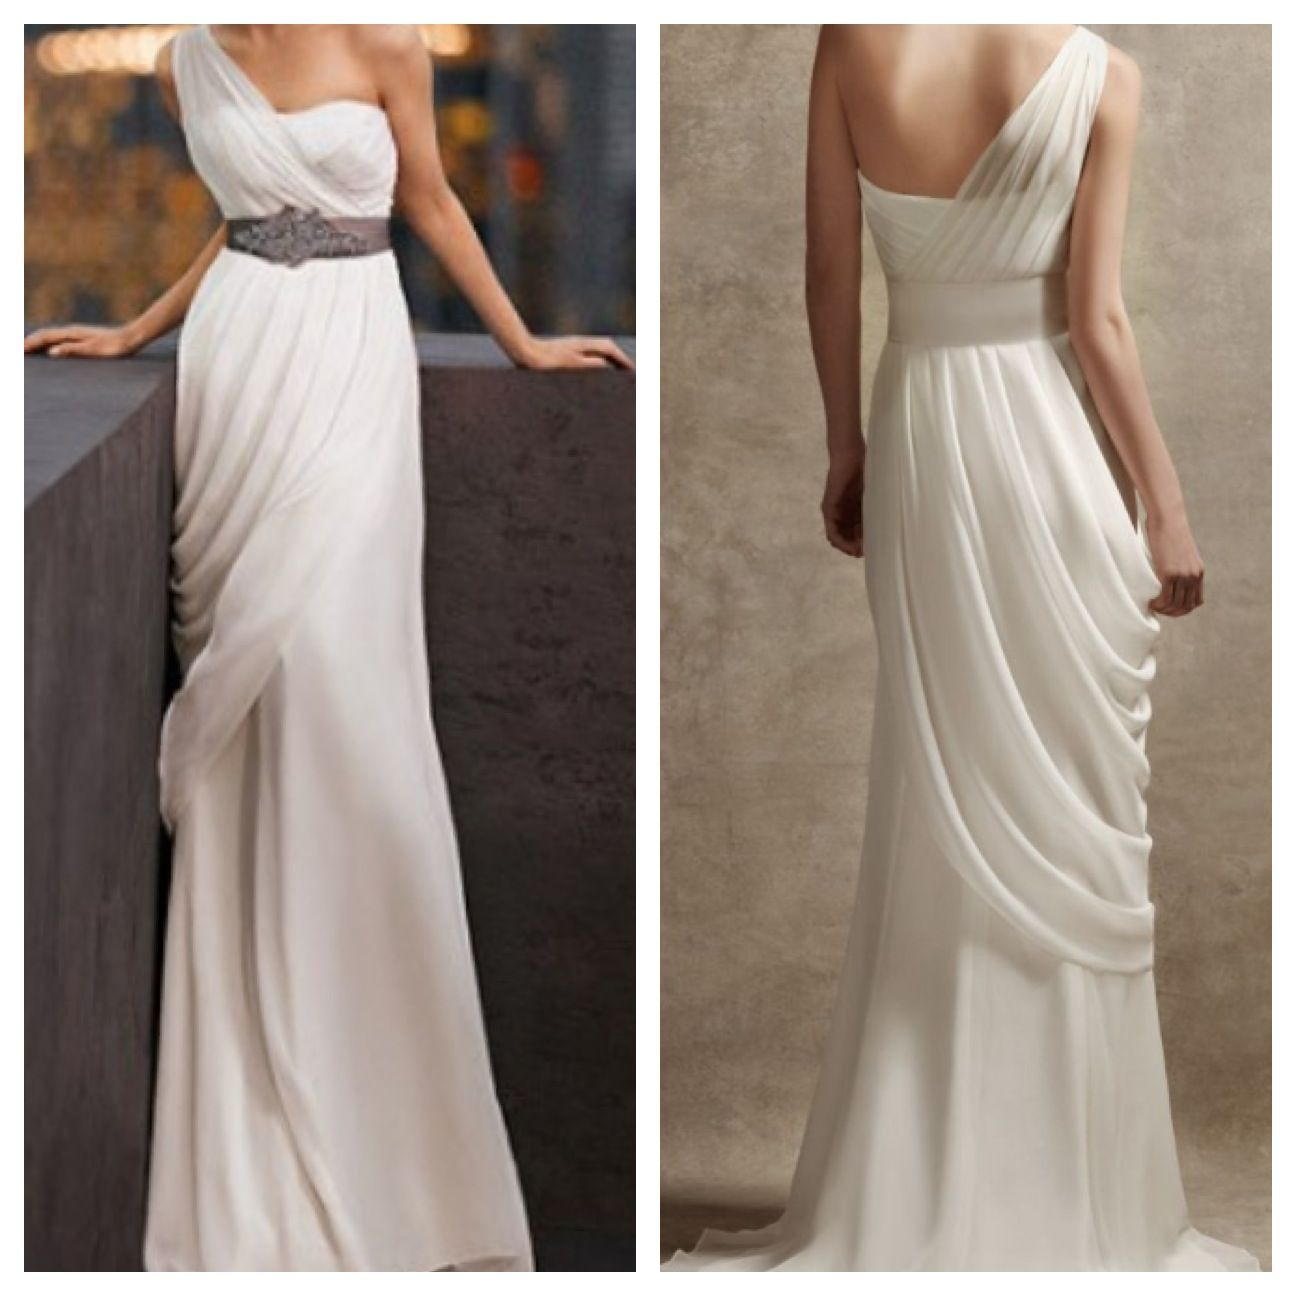 2017 Sheath Wedding Dresses For Greek Goddess Simple: Here's Another Similar Greek Gown, I Prefer The One